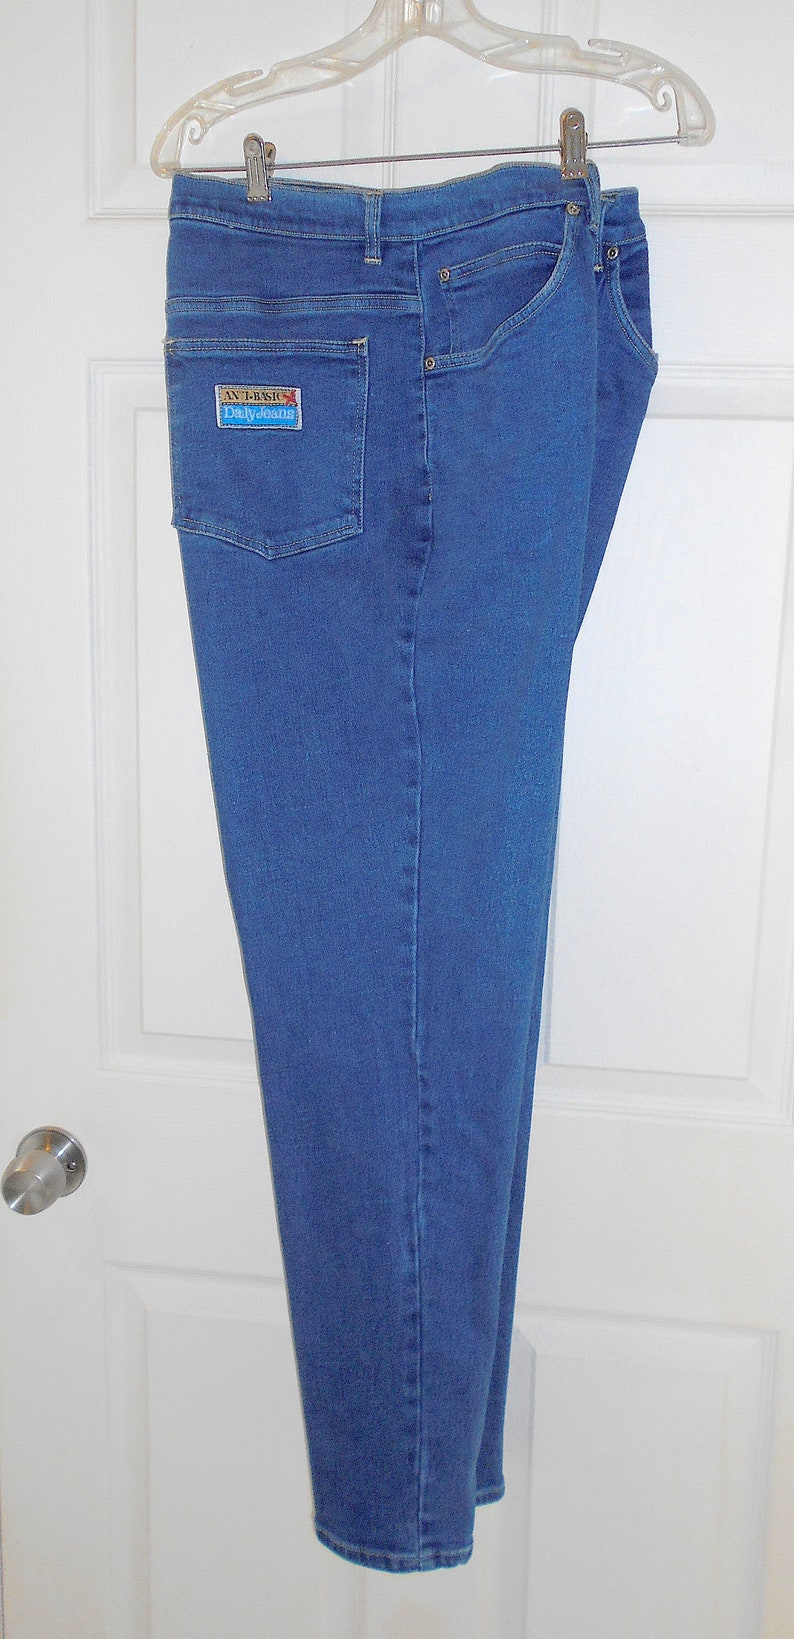 7c1b87bb10a Vintage Women s Anti Basic Daily Jeans High-Waisted Stretch Jeans Size 22